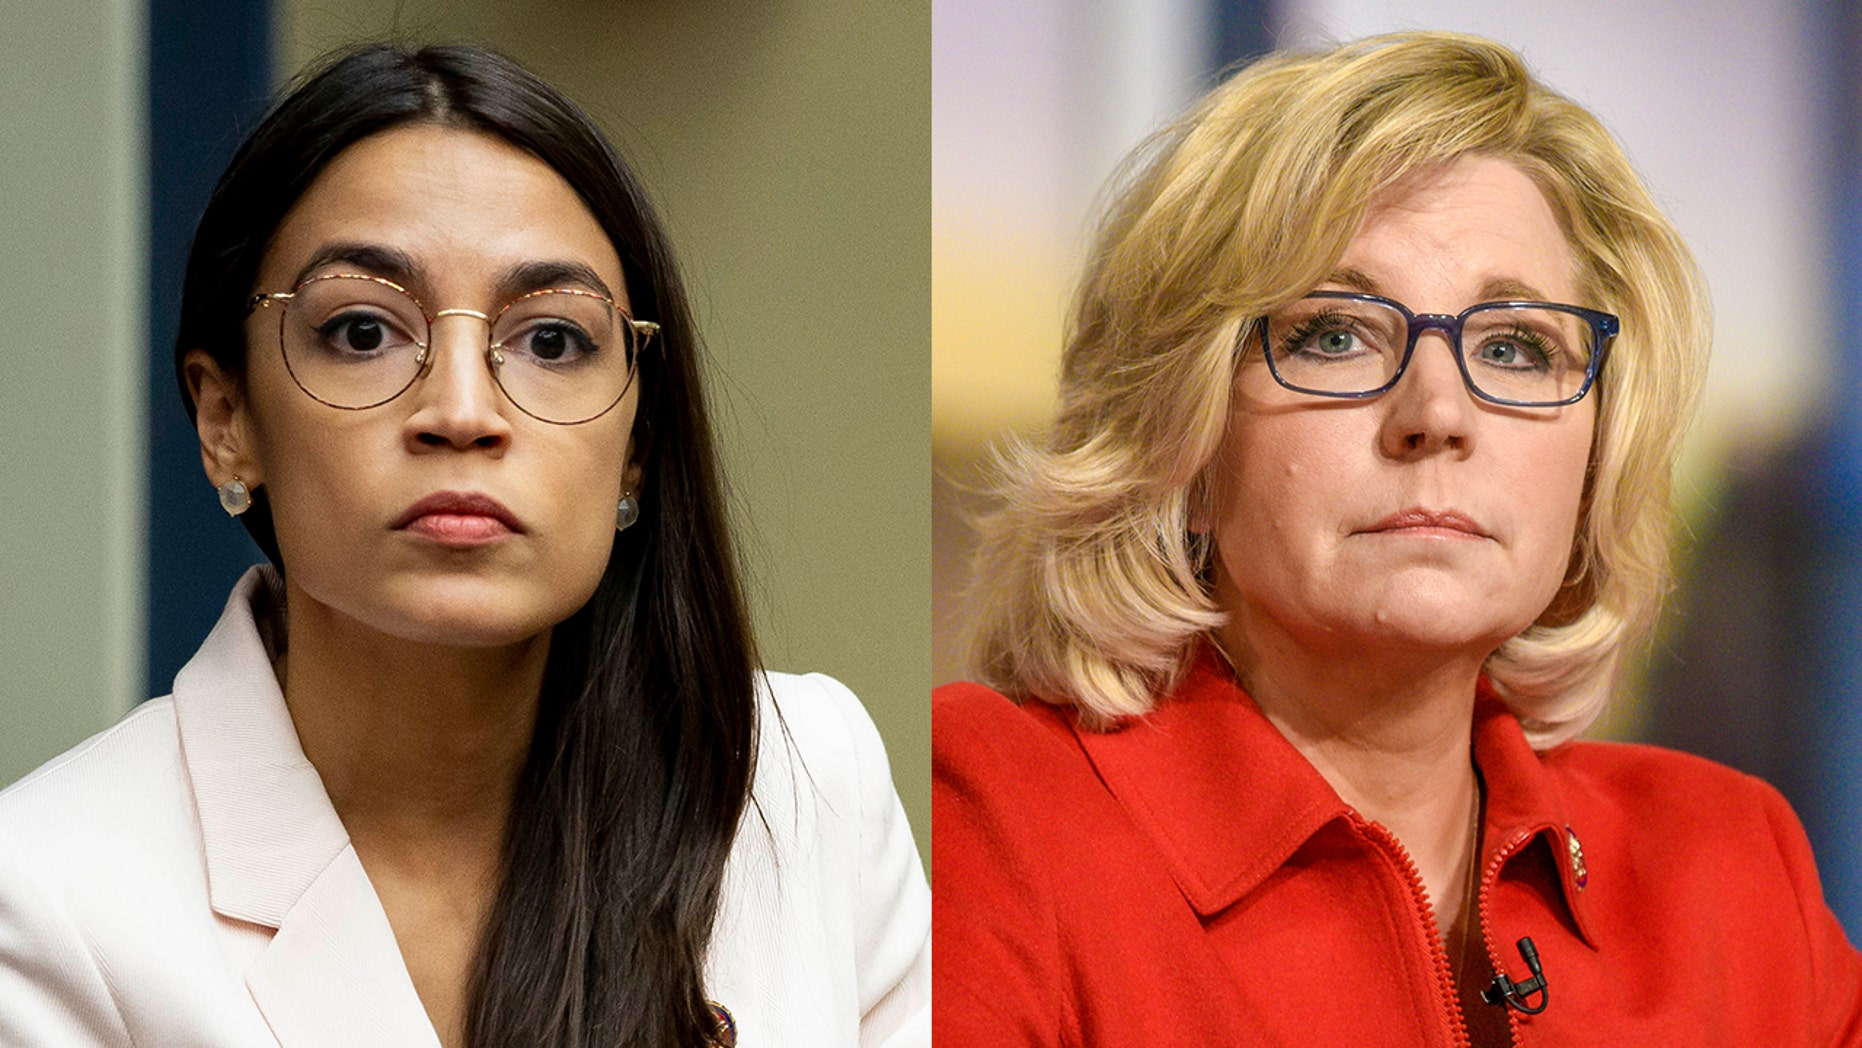 "Rep. Alexandria Ocasio-Cortez, D-N.Y., has taken aim at ""shrieking Republicans,"" including Rep. Liz Cheney, who criticized her for comparing border facilities at the U.S.-Mexico border to concentration camps<br>"